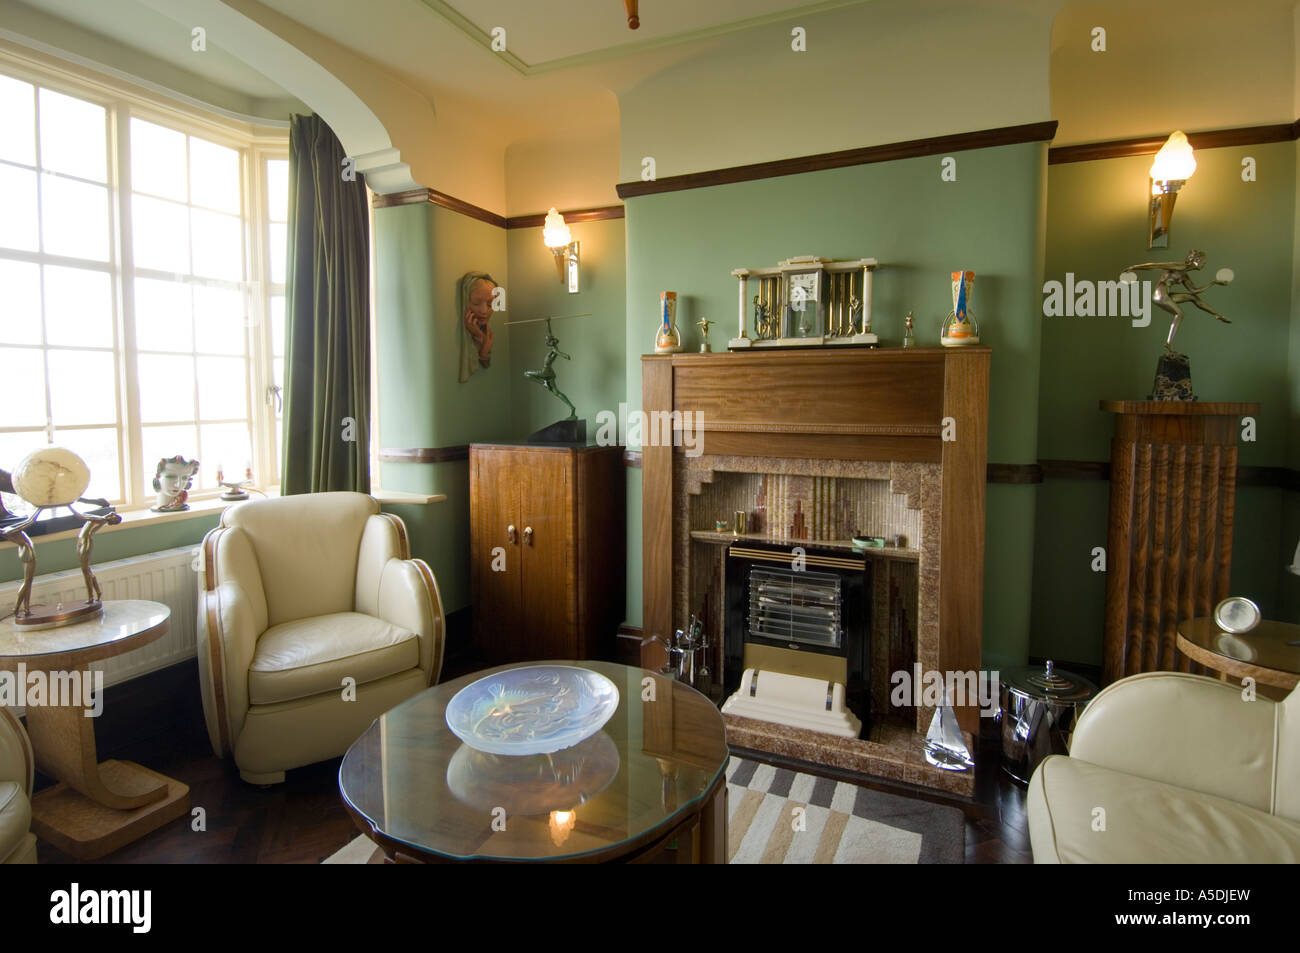 refurbished art deco art nouveau 1930 s house interior lounge living stock photo 11280144 alamy. Black Bedroom Furniture Sets. Home Design Ideas